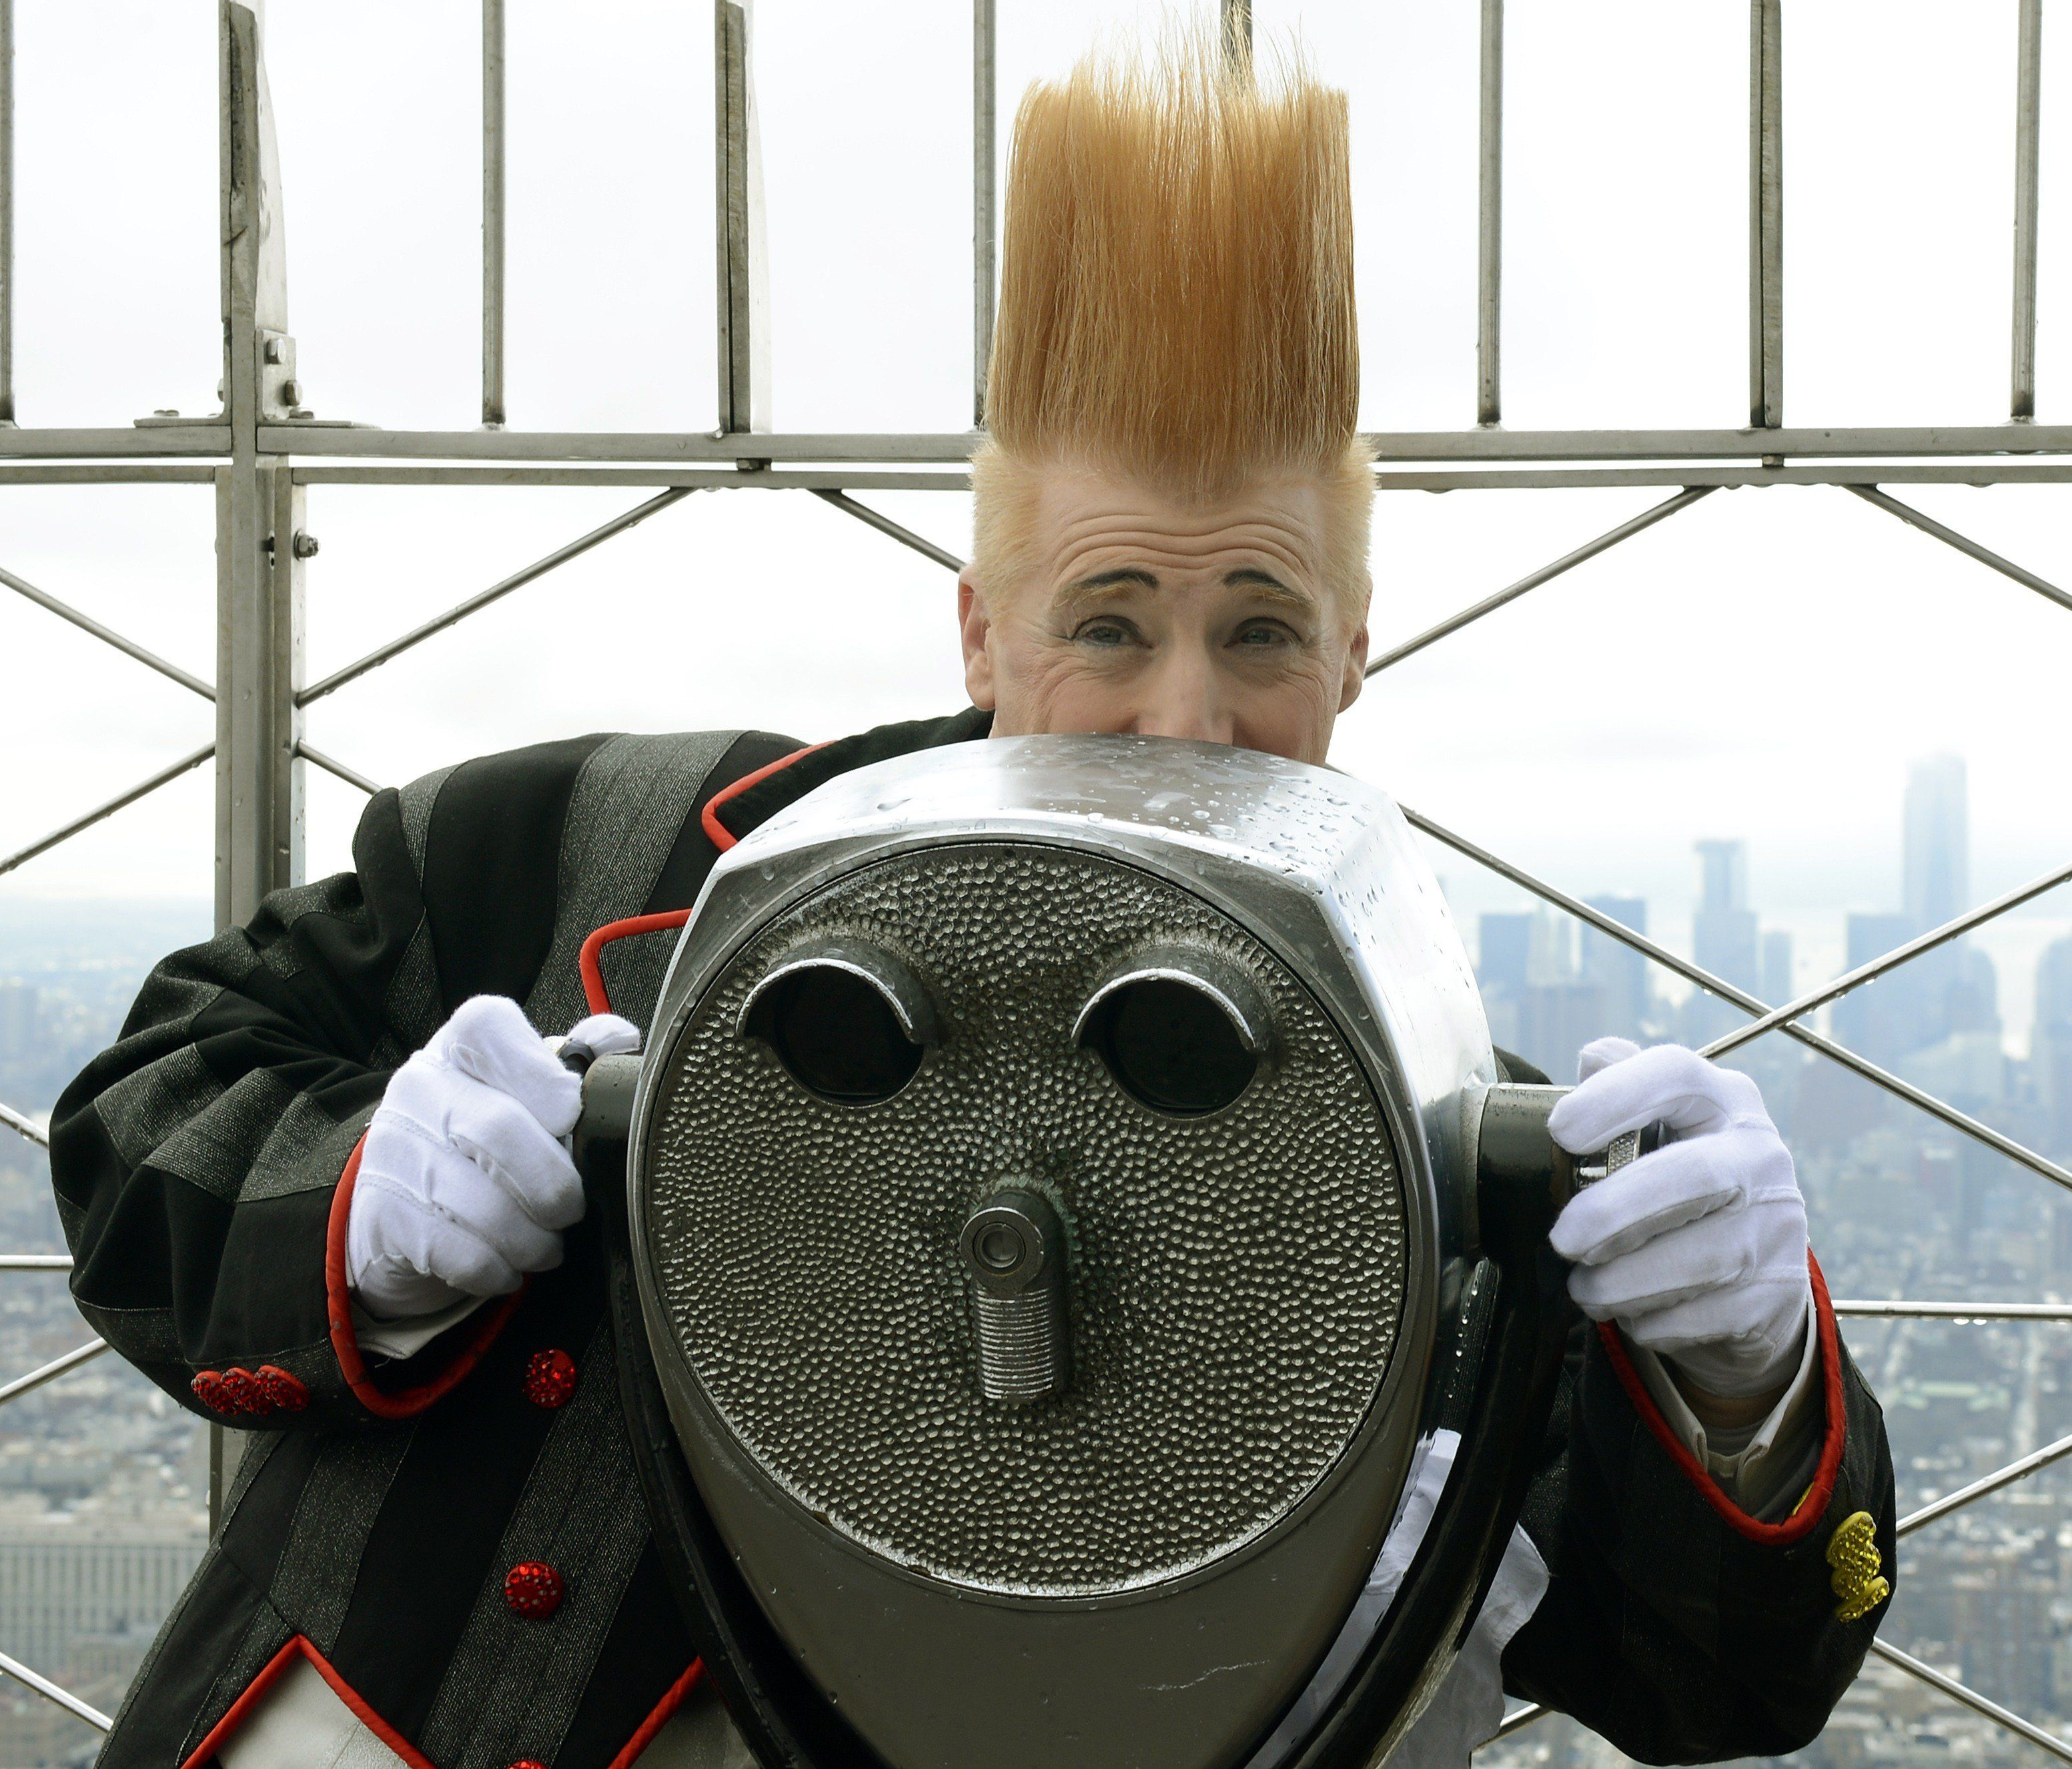 Bello Nock, the former star of both Big Apple Circus and Ringling Brothers at the Empire State Building's world-famous 86th floor Observatory March 19, 2013.  Bello Nock  is here to celebrate the New York City debut of his first-ever independently produced show, Bello Mania, which runs at the New Victory Theater through March 31.  AFP PHOTO / TIMOTHY A. CLARY        (Photo credit should read TIMOTHY A. CLARY/AFP/Getty Images)